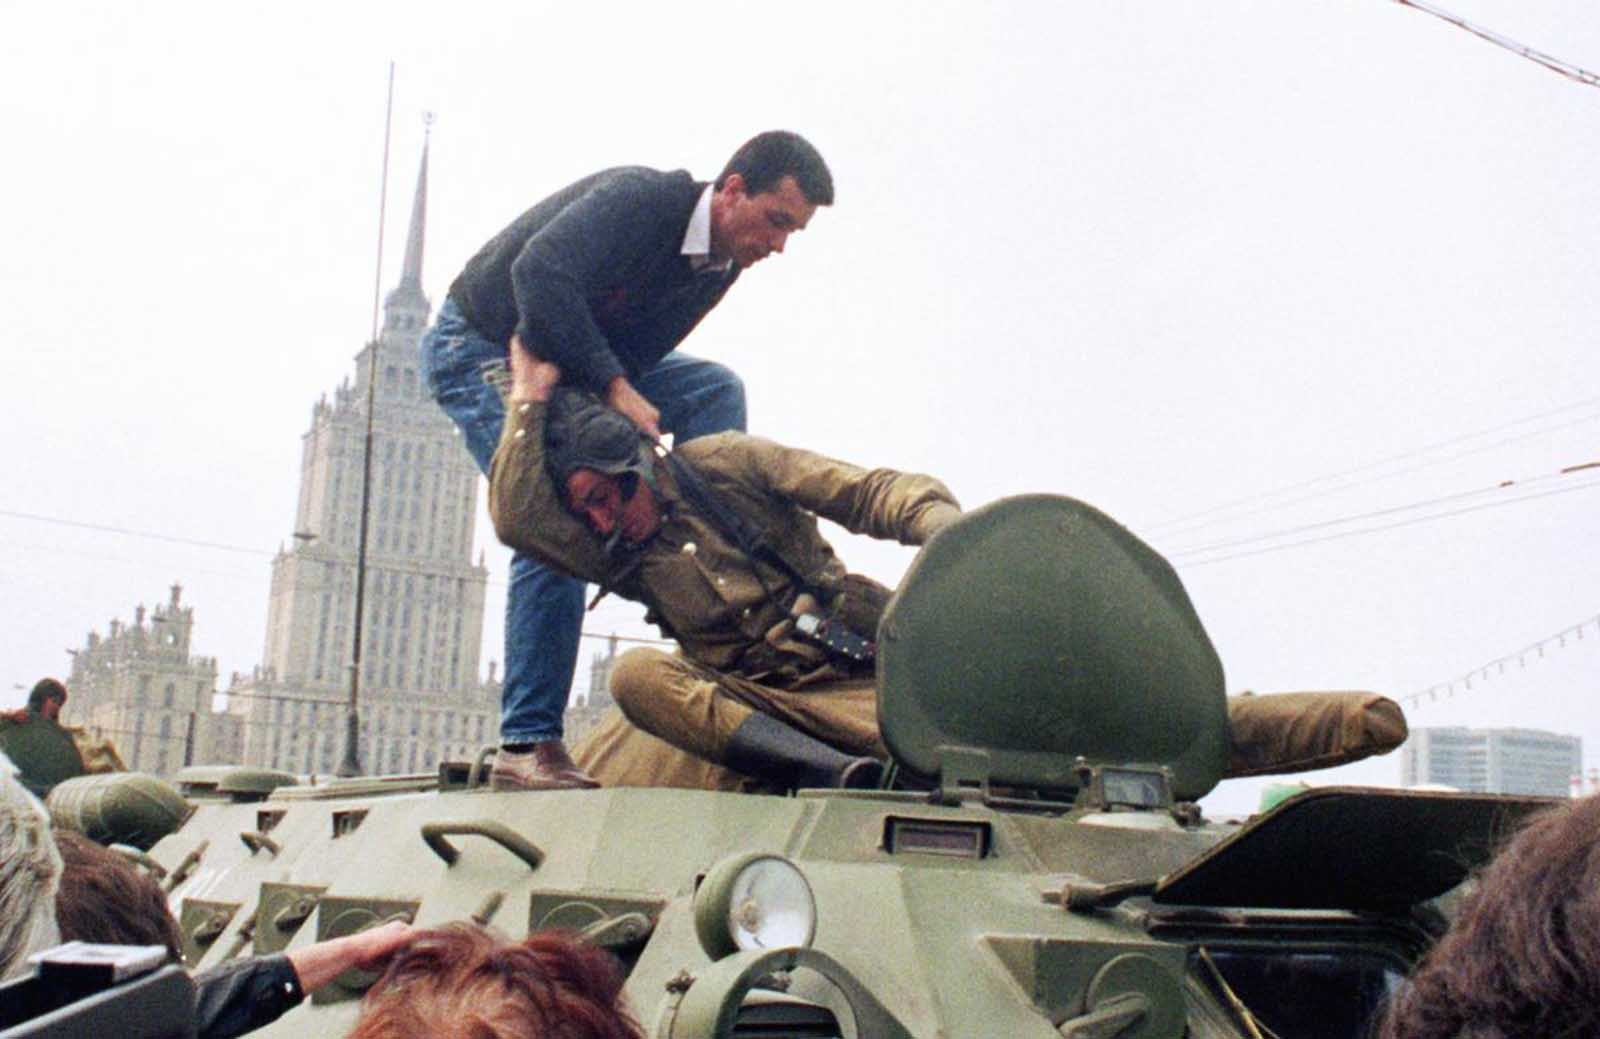 A pro-democracy demonstrator fights with a Soviet soldier on top of a tank parked in front of the Russian Federation building on August 19, 1991, after a coup toppled Soviet President Mikhail Gorbachev. The same day, thousands in Moscow, Leningrad, and other cities answered Russian Republic President Boris Yeltsin's call to raise barricades against tanks and troops.